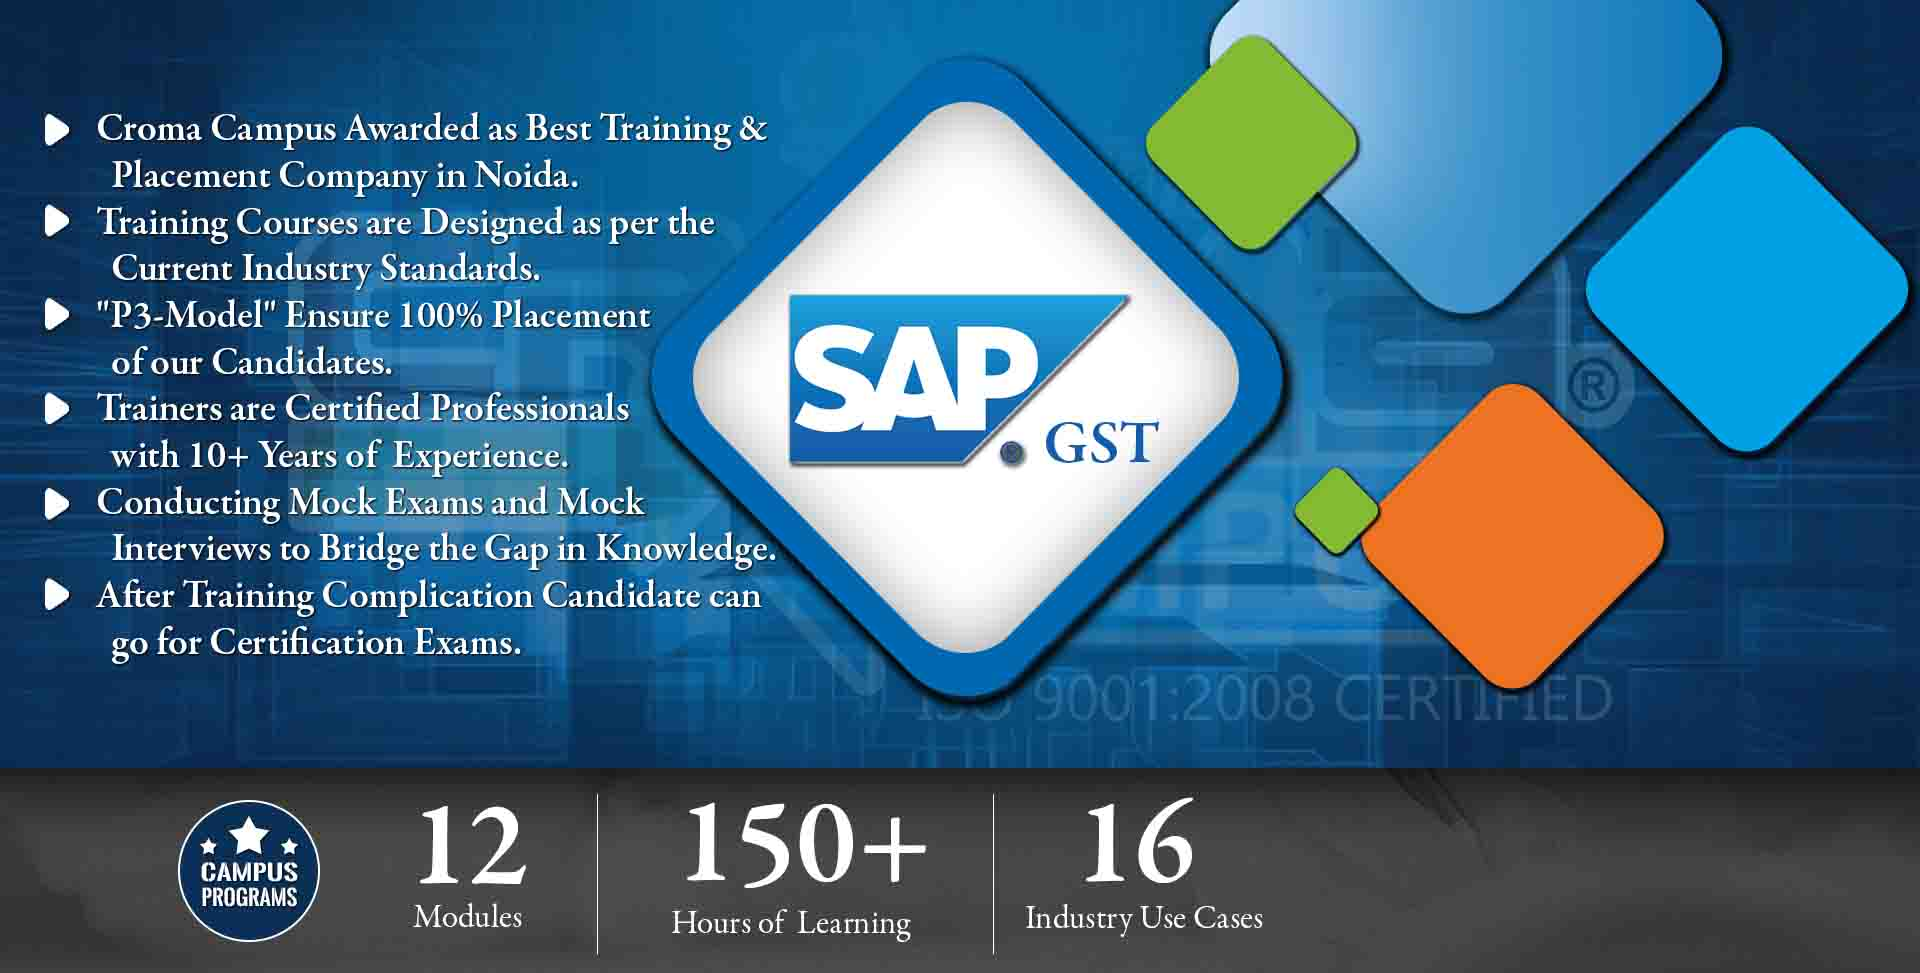 SAP GST Training in Noida- Croma Campus